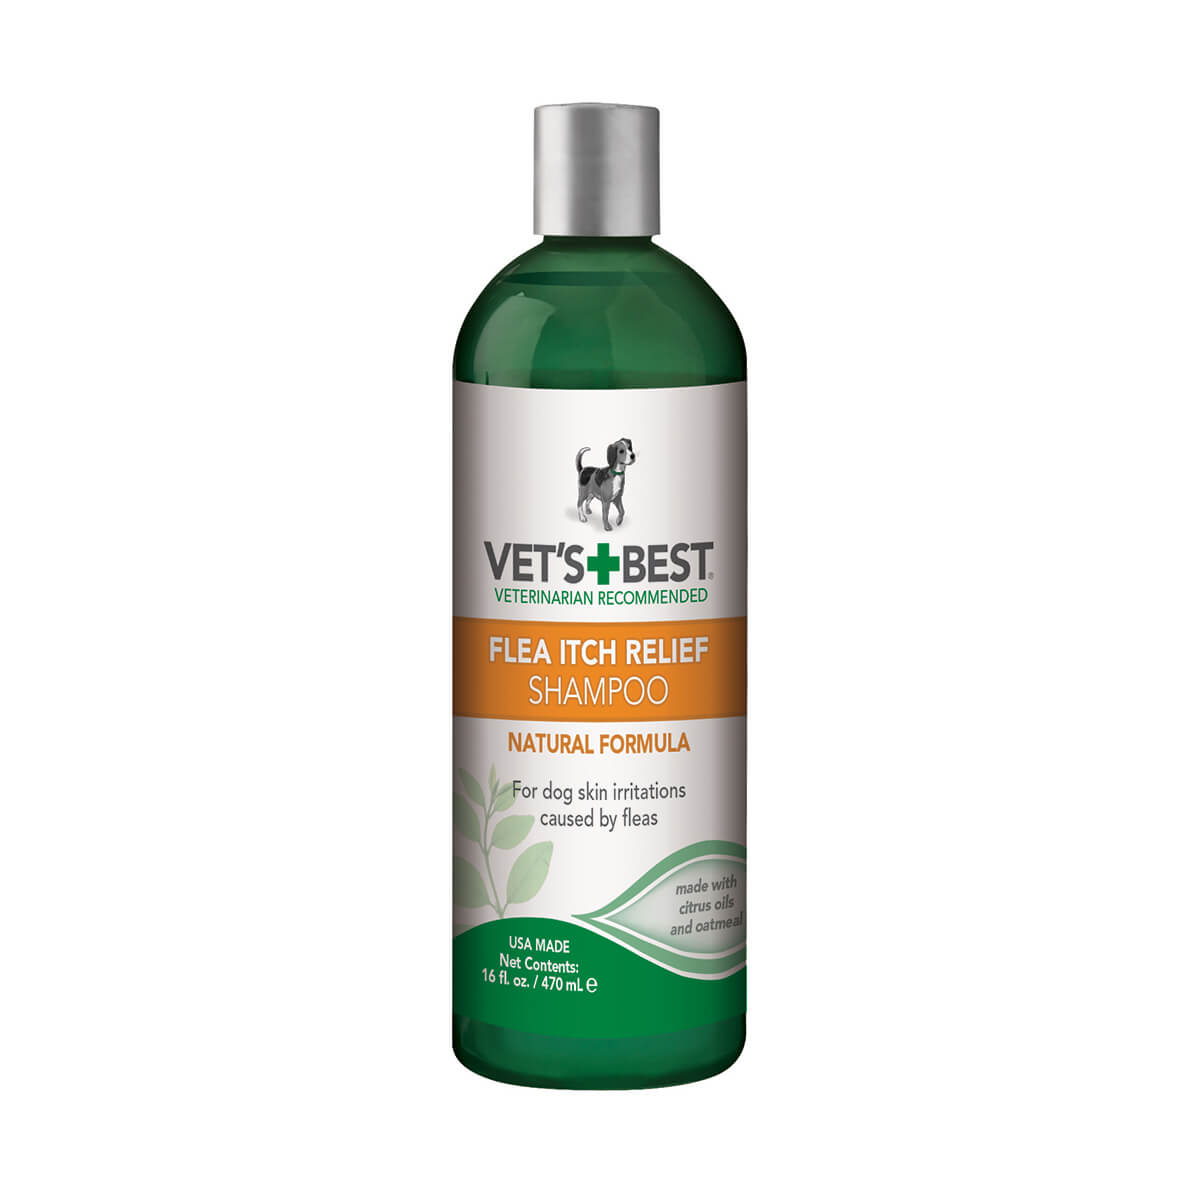 Vet's Best Flea Itch Relief Shampoo for Dogs - 16oz